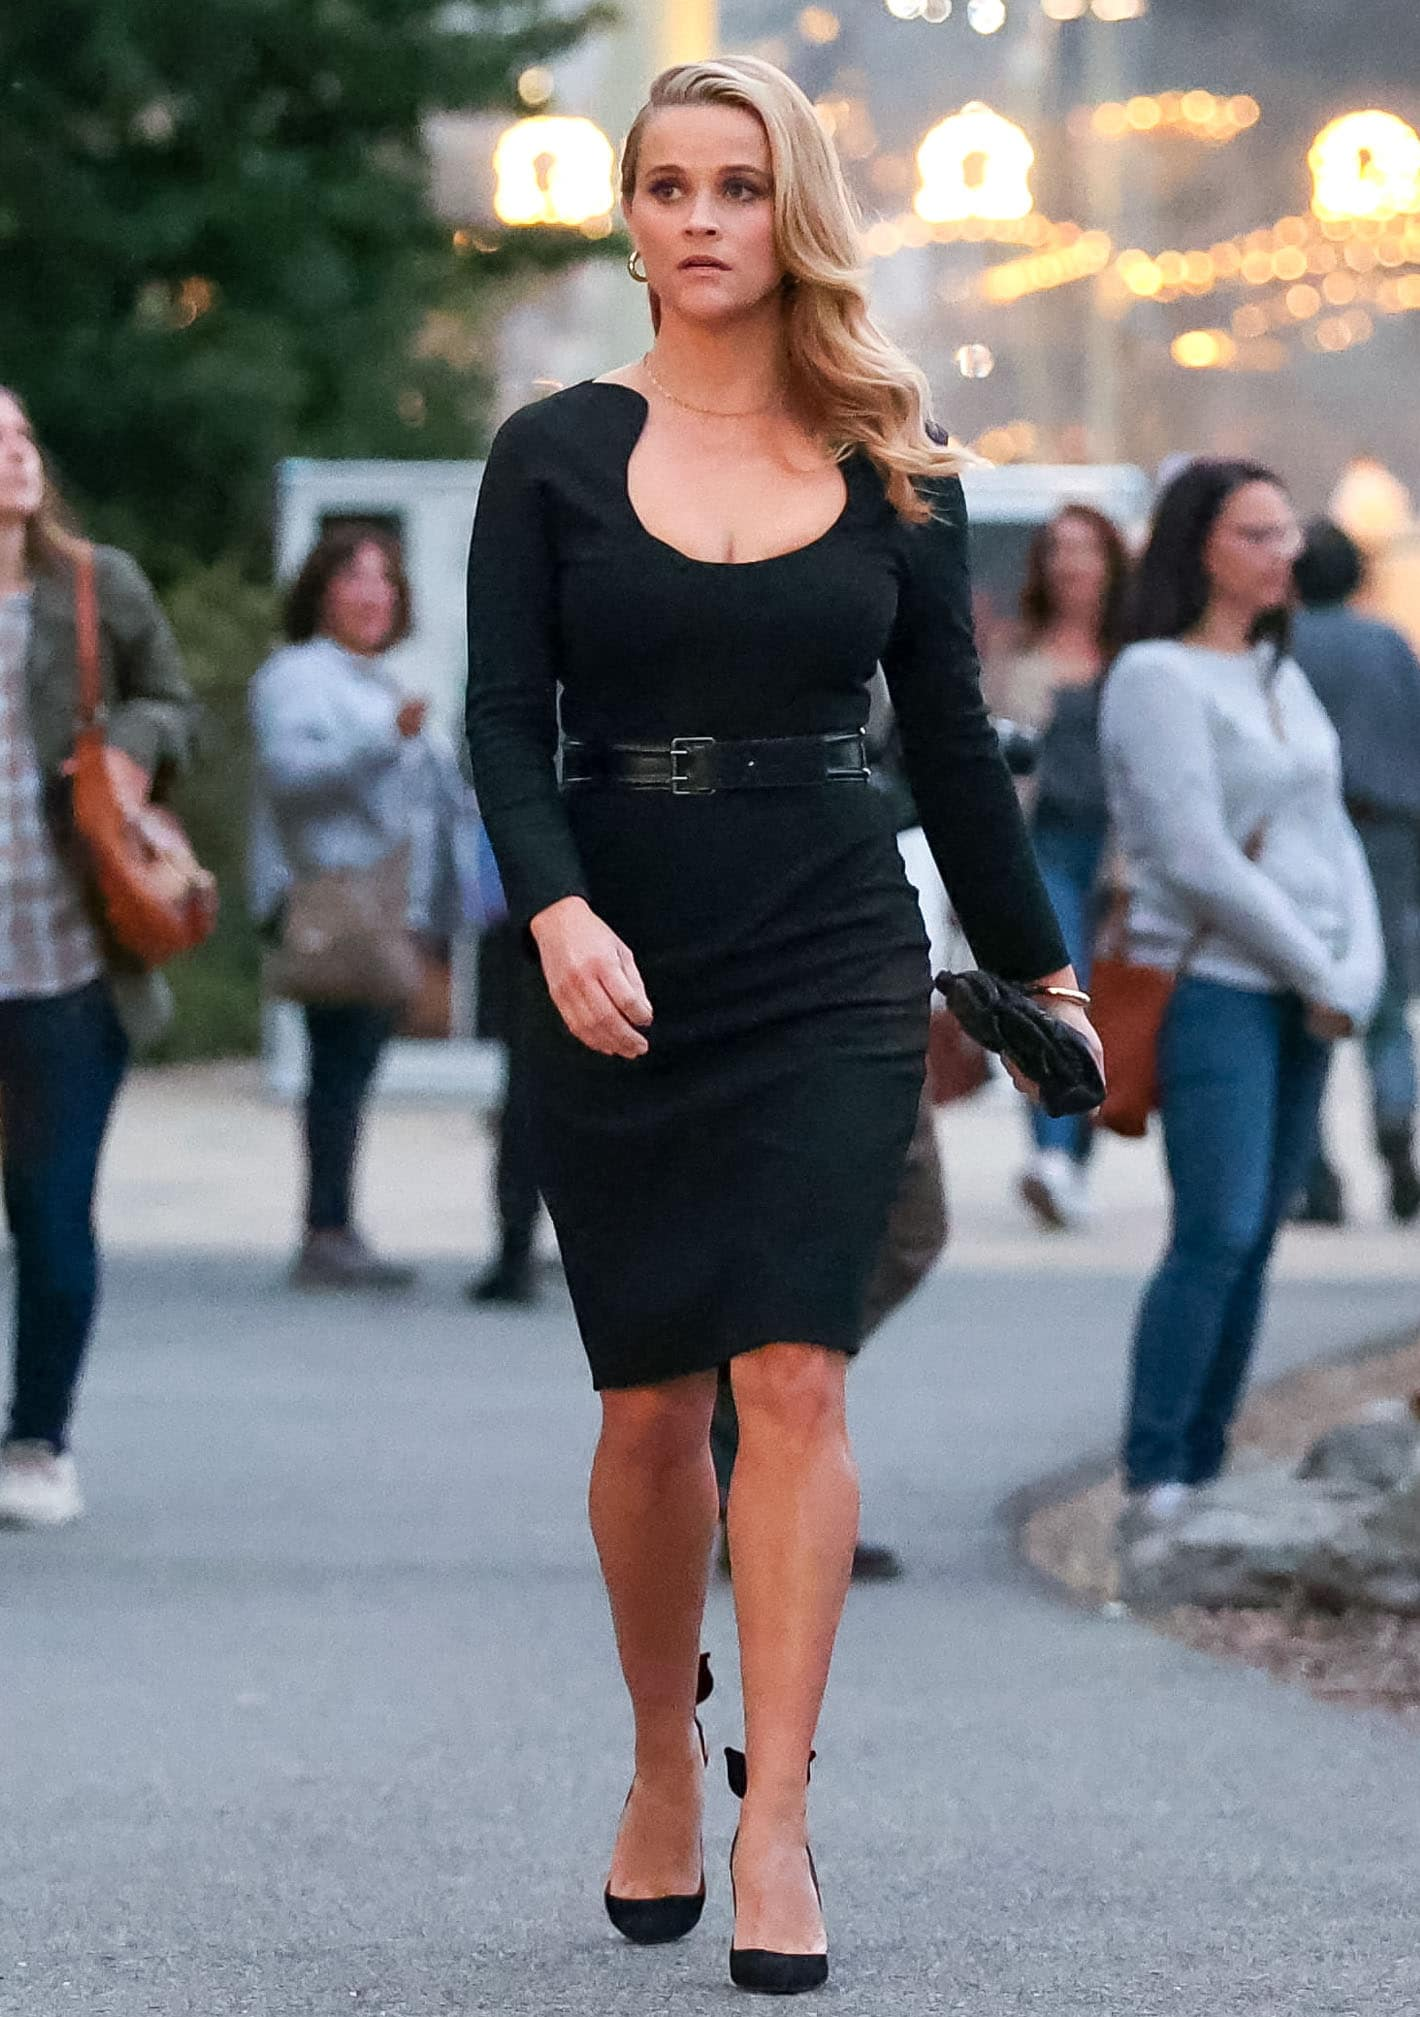 Reese Witherspoon showcases her curves in a form-fitting black body-con dress on the set of her new movie